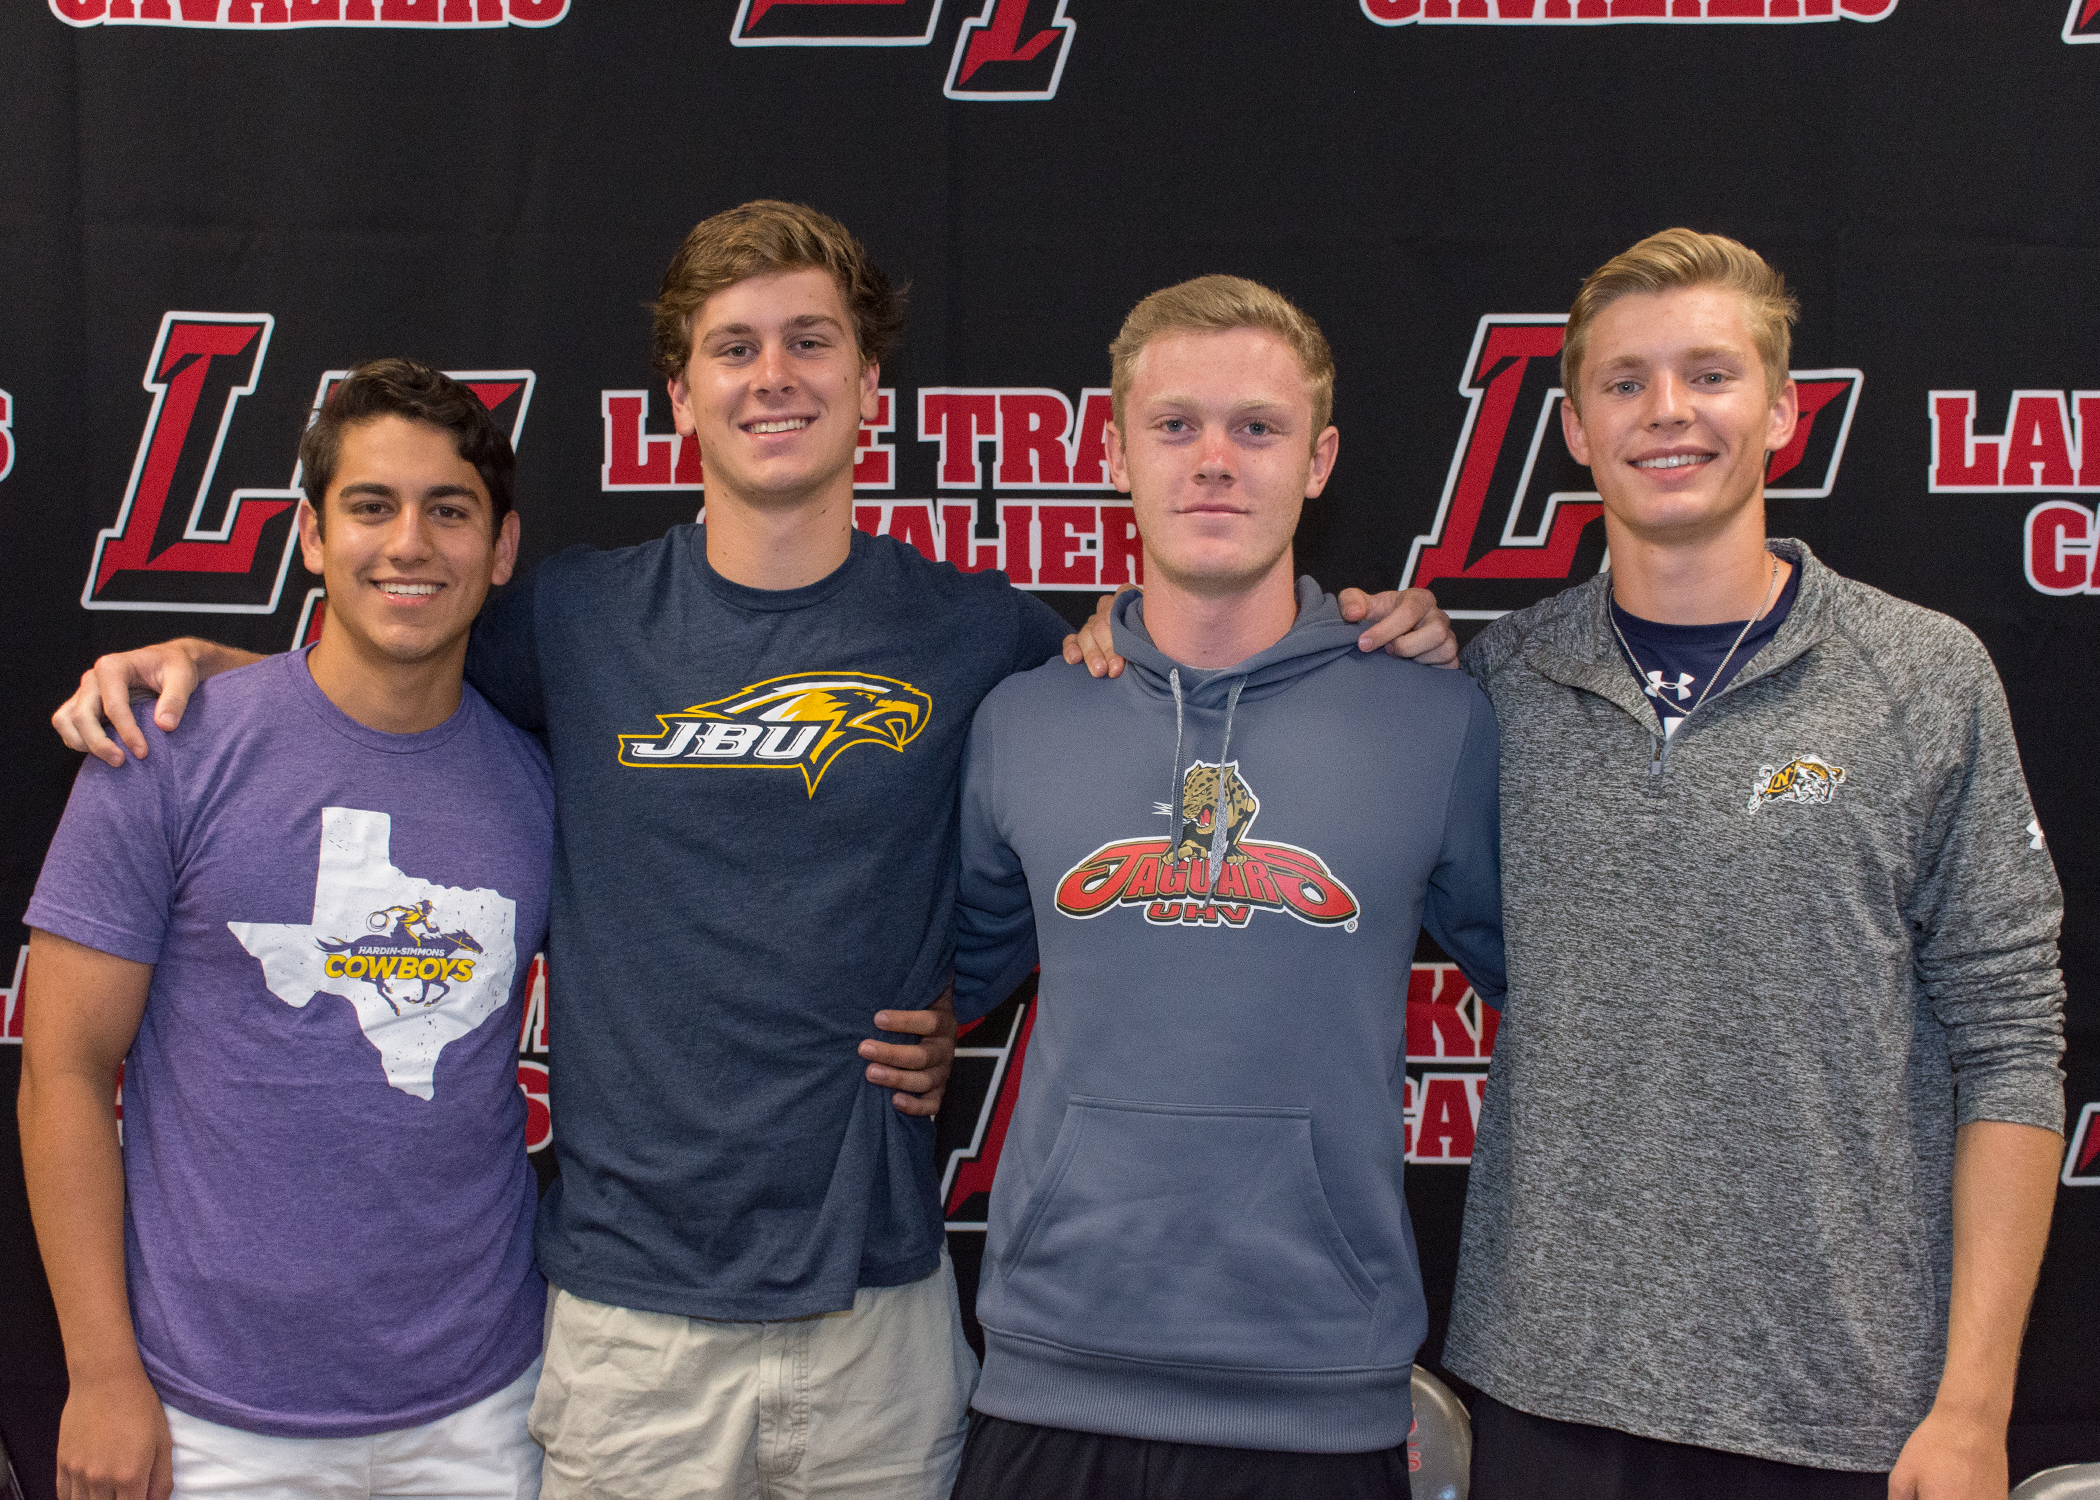 LTHS soccer student-athletes (left to right):  Angel Martinez Palomo  - Hardin Simmons University in Abilene, Texas  Max Everswick  - John Brown University in Siloam Springs, Arkansas  Austin Branam  - University of Houston-Victoria in Victoria, Texas  Bayne Bentley  - Naval Academy in Annapolis, Maryland